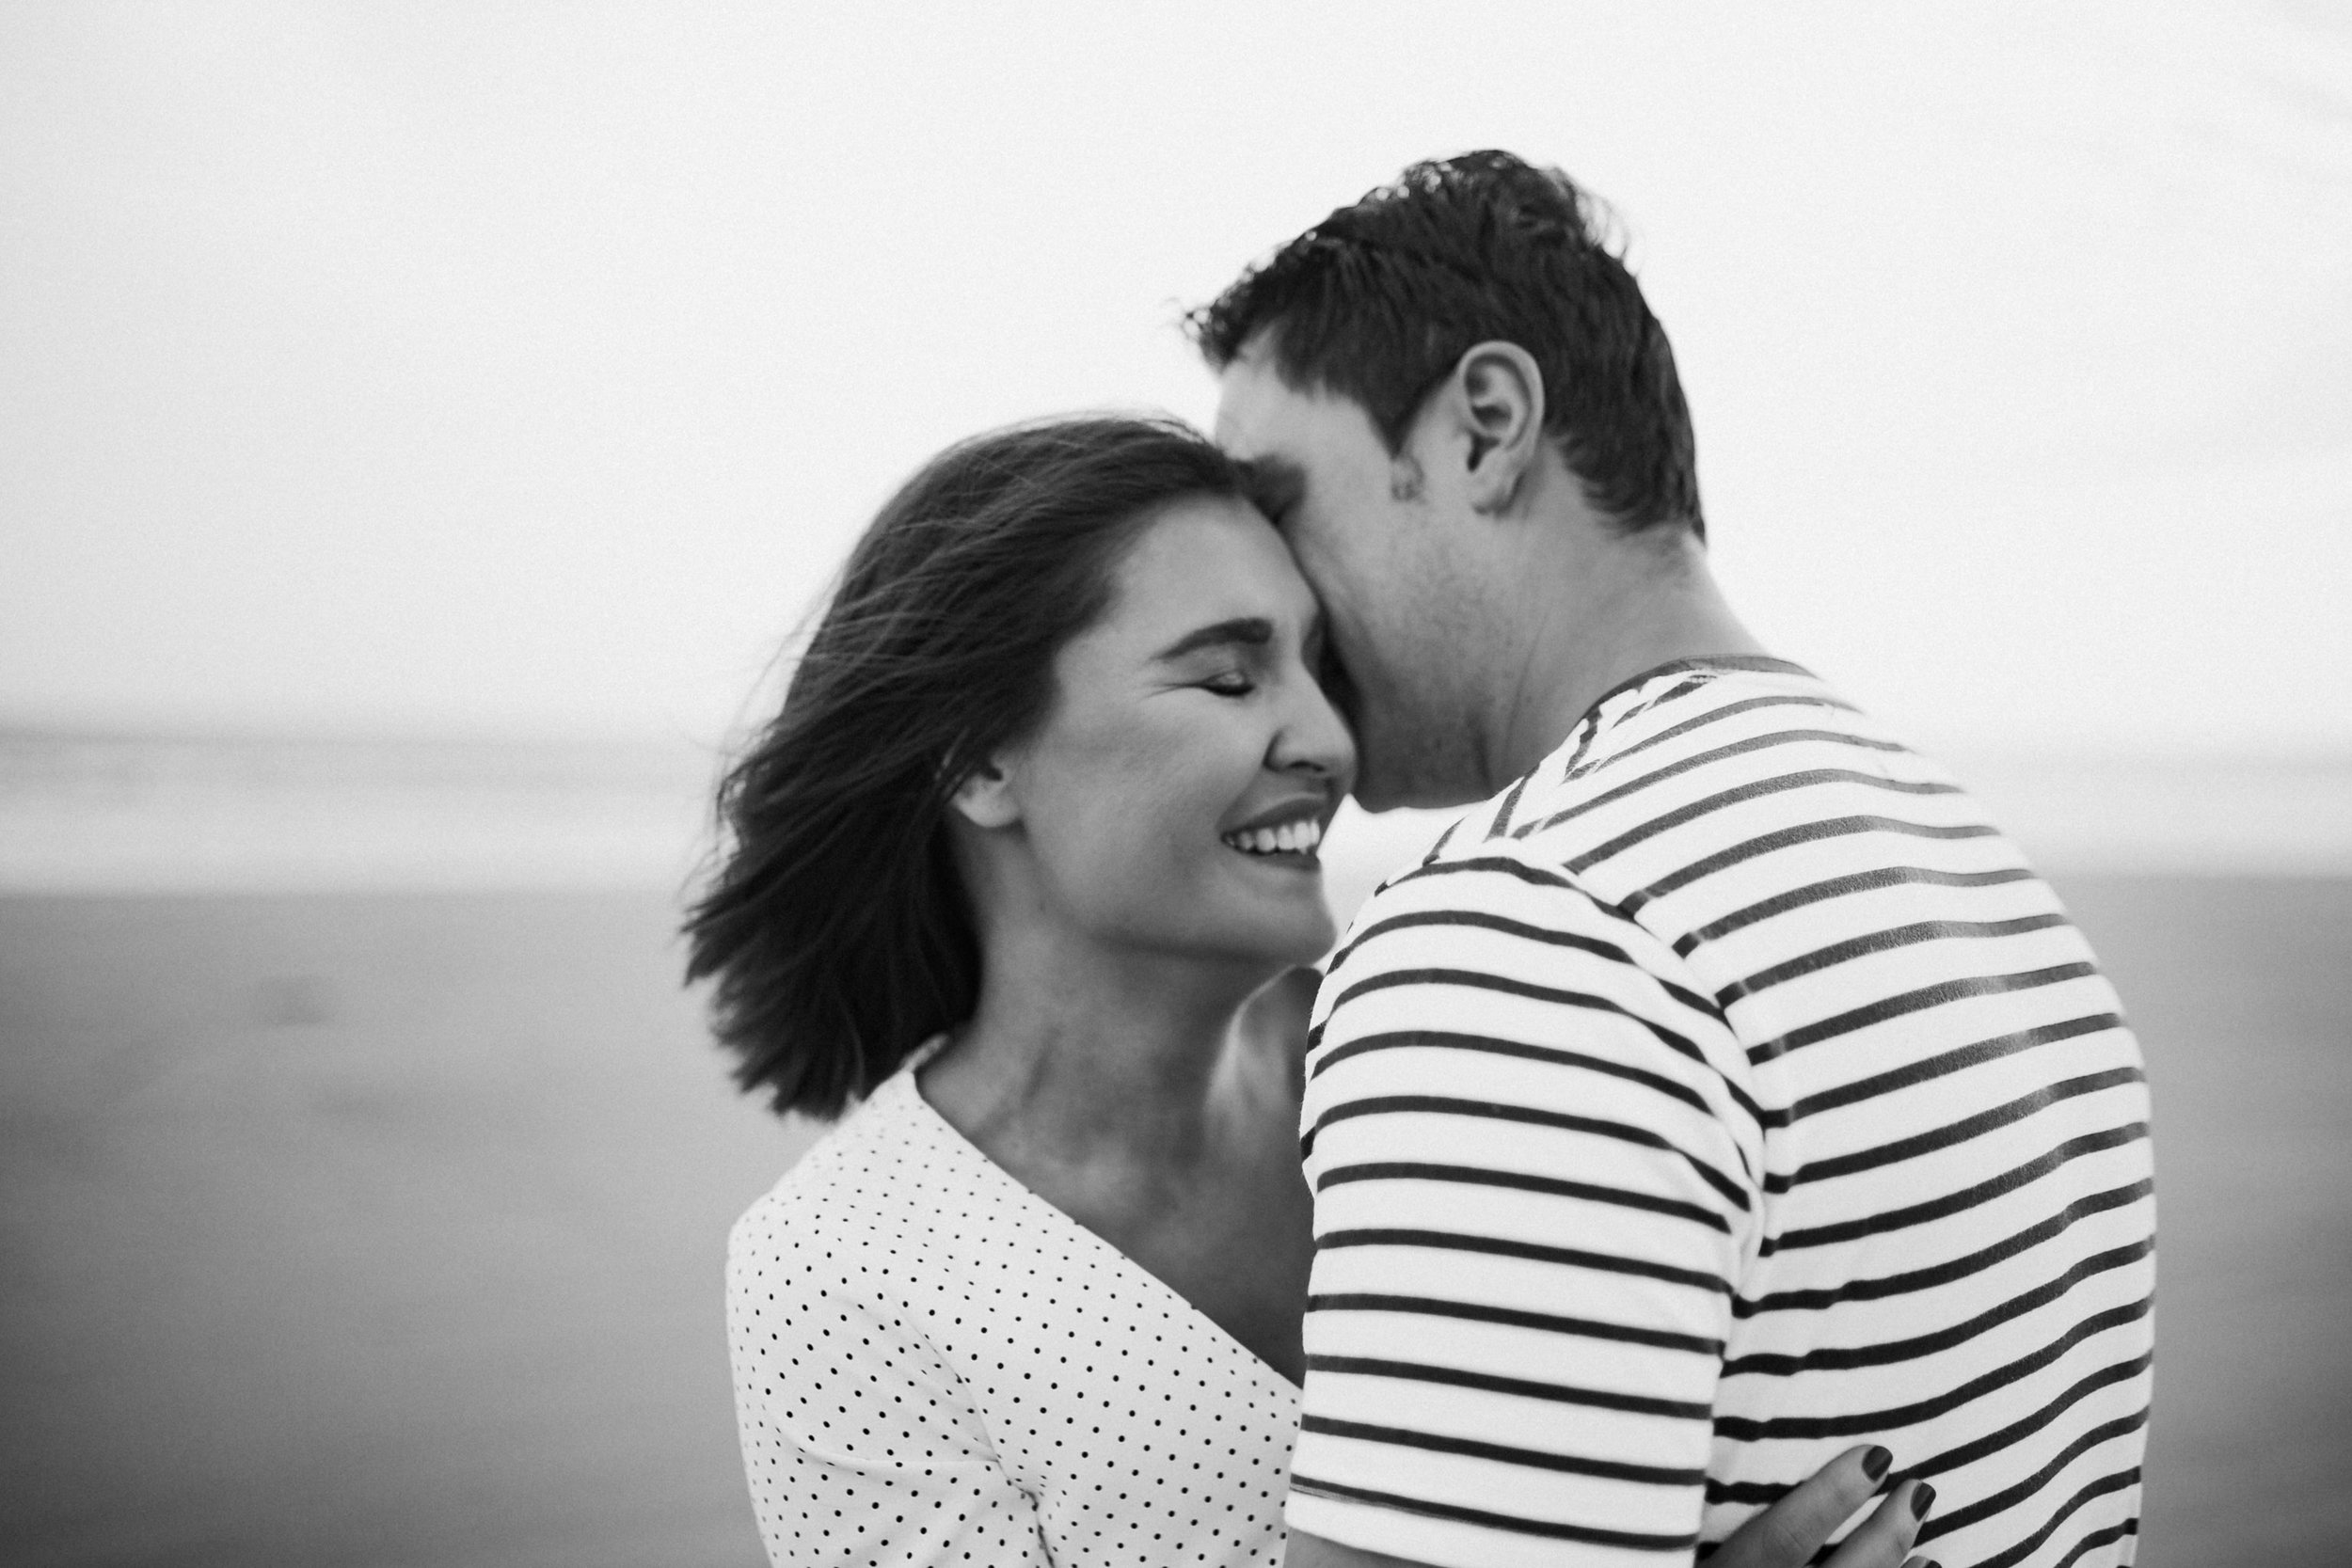 Kristen+Daniel+Engagement+Session+Portraits+Kiama+Beach-14.jpg